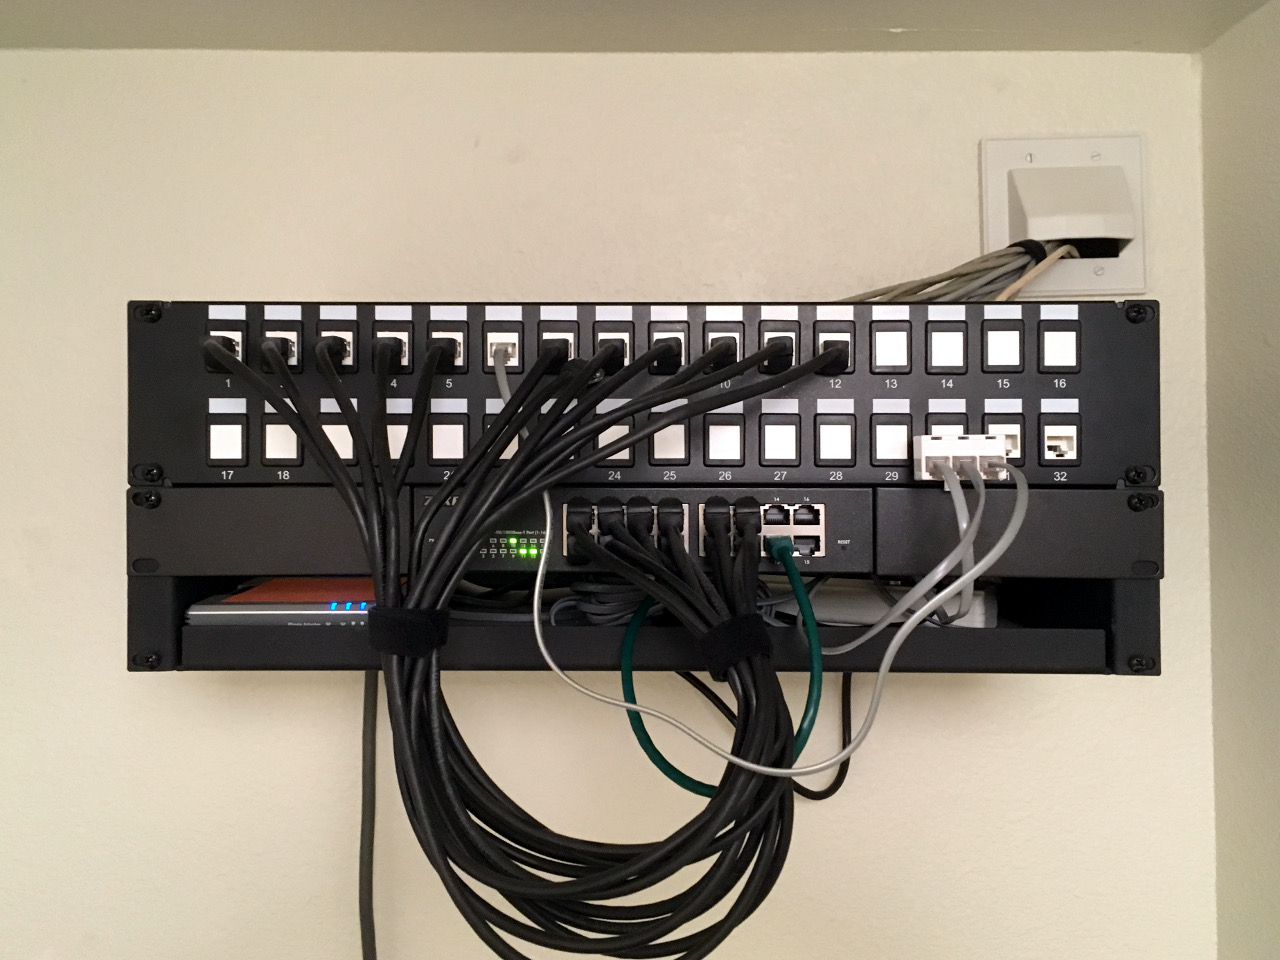 hight resolution of home sweet home home network wiring home network wiring patch panel home network wiring